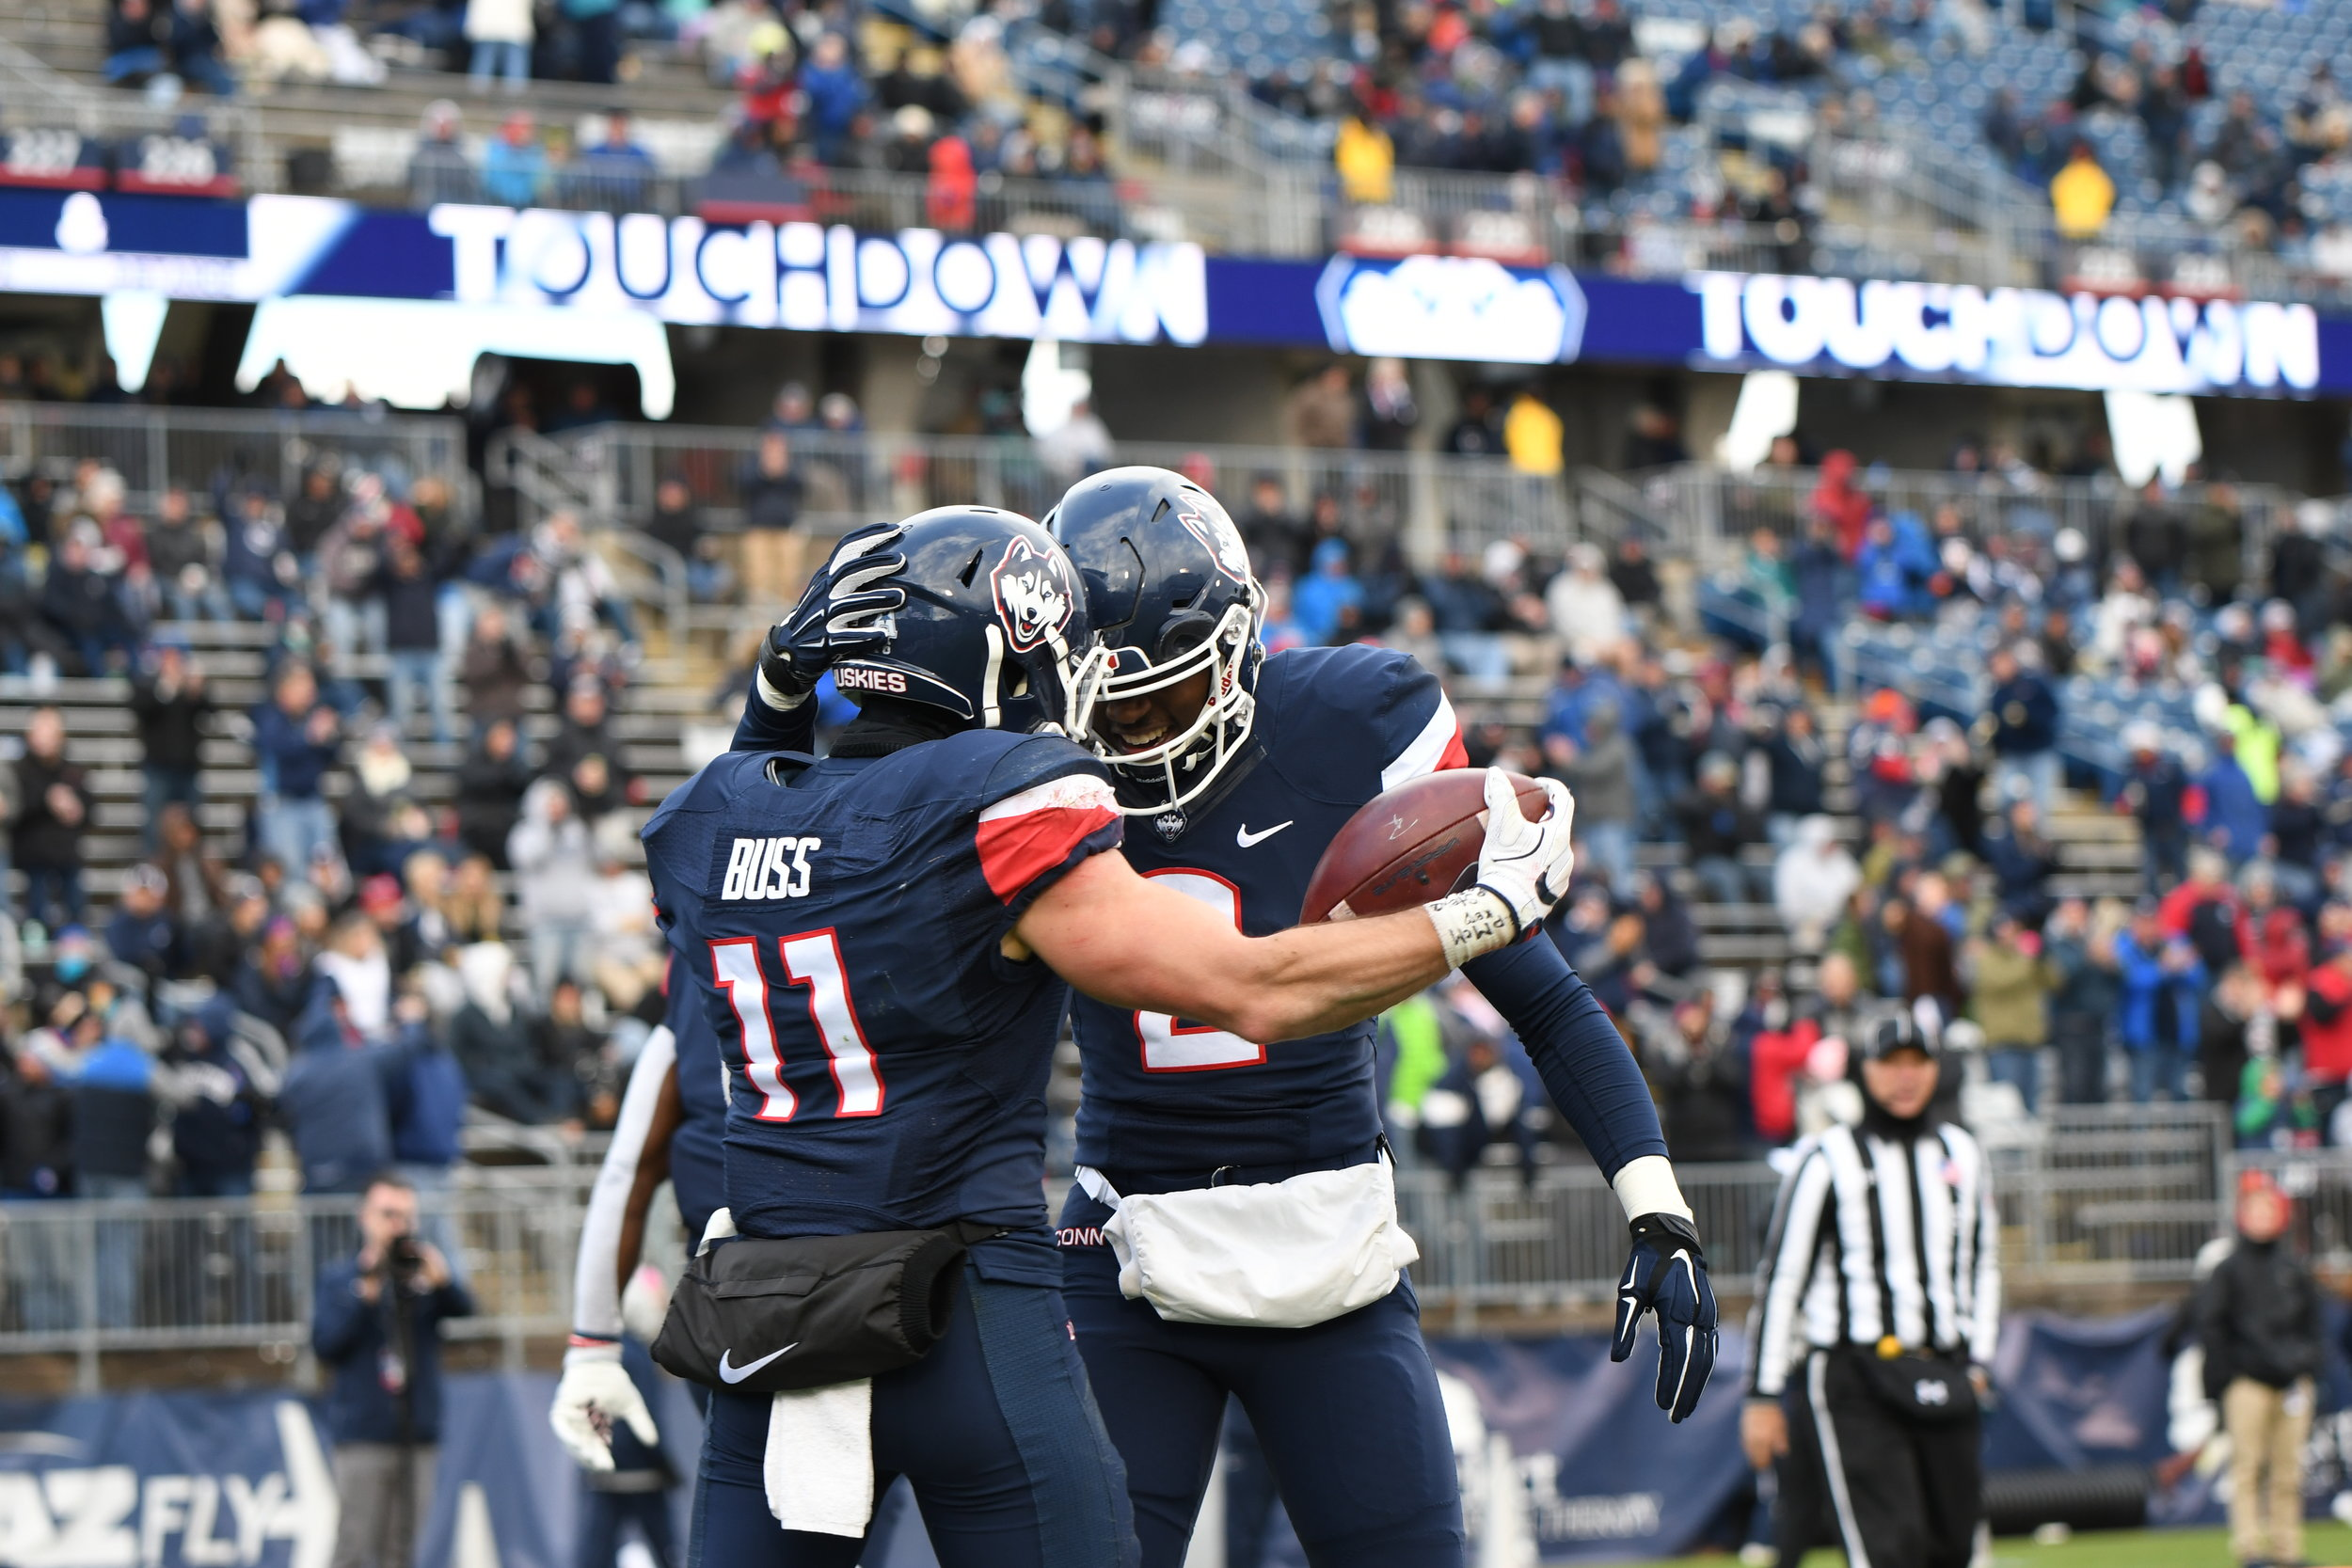 Between fixing the worst defense in college football, deciding on a starting quarterback and finding playmakers to put on the field, head coach Randy Edsall has his hands full. (Charlotte Lao/The Daily Campus)